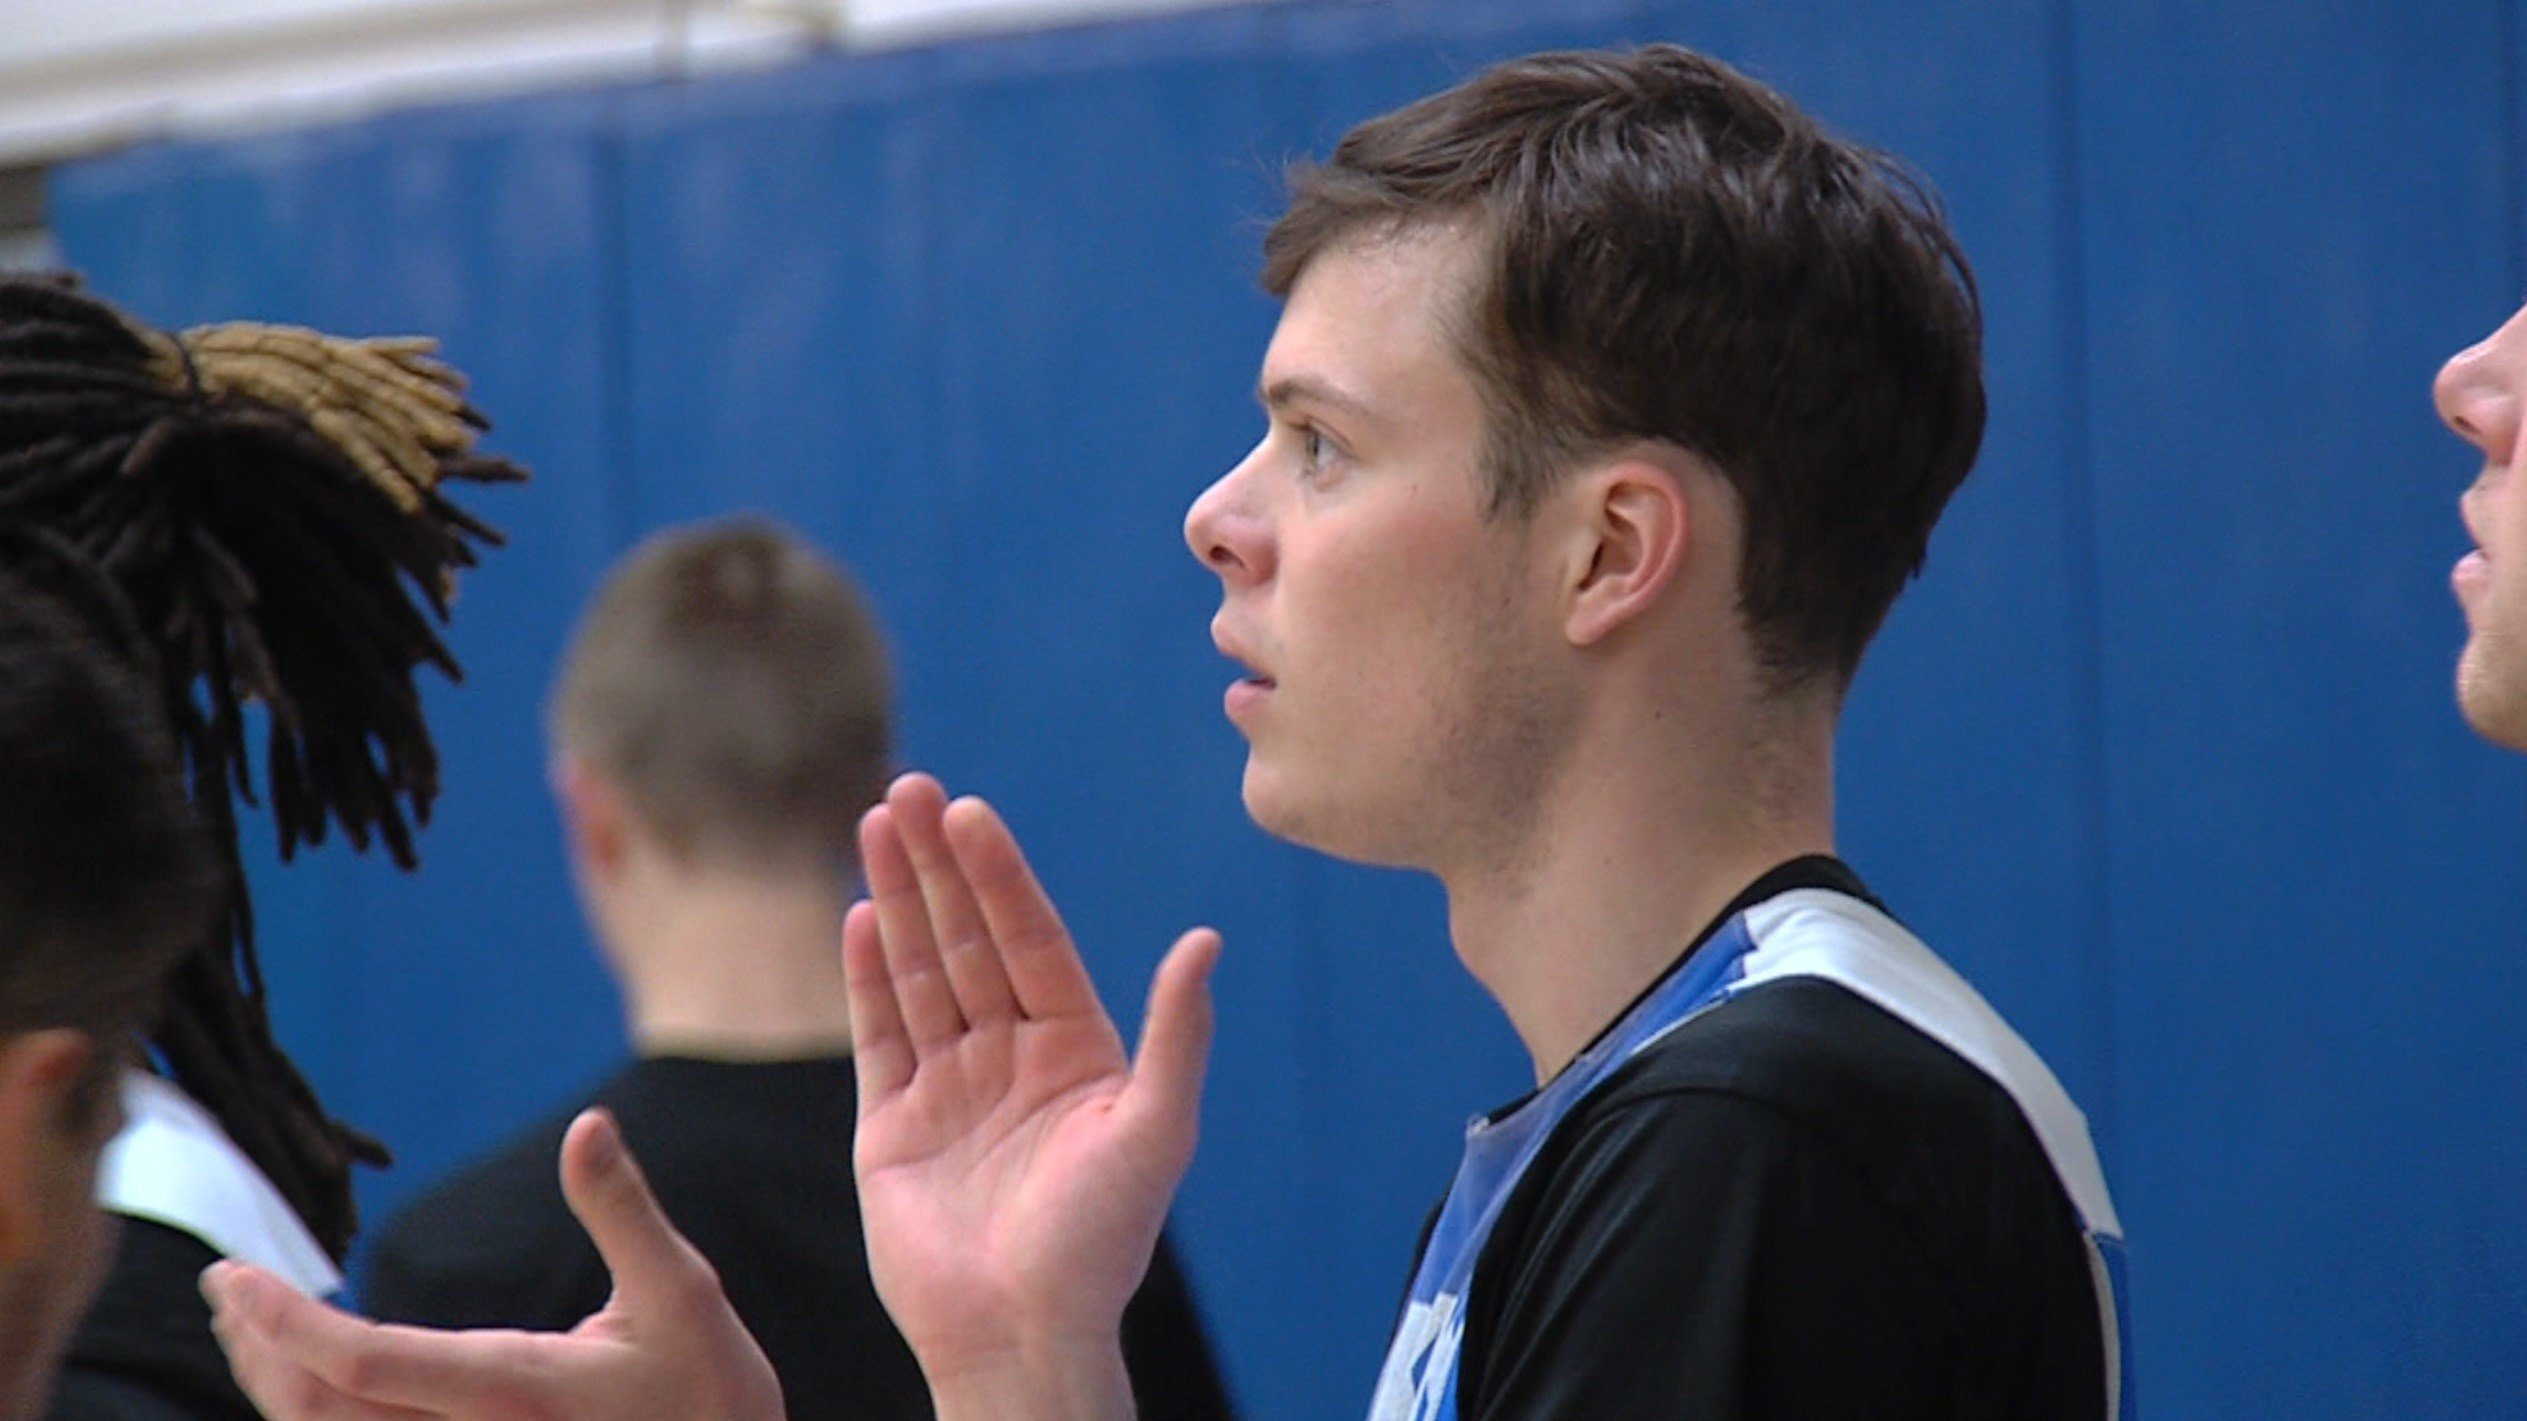 Millikin sophomore Zach Fisher ranks fifth in the nation in 3-point field goal percentage (.506).